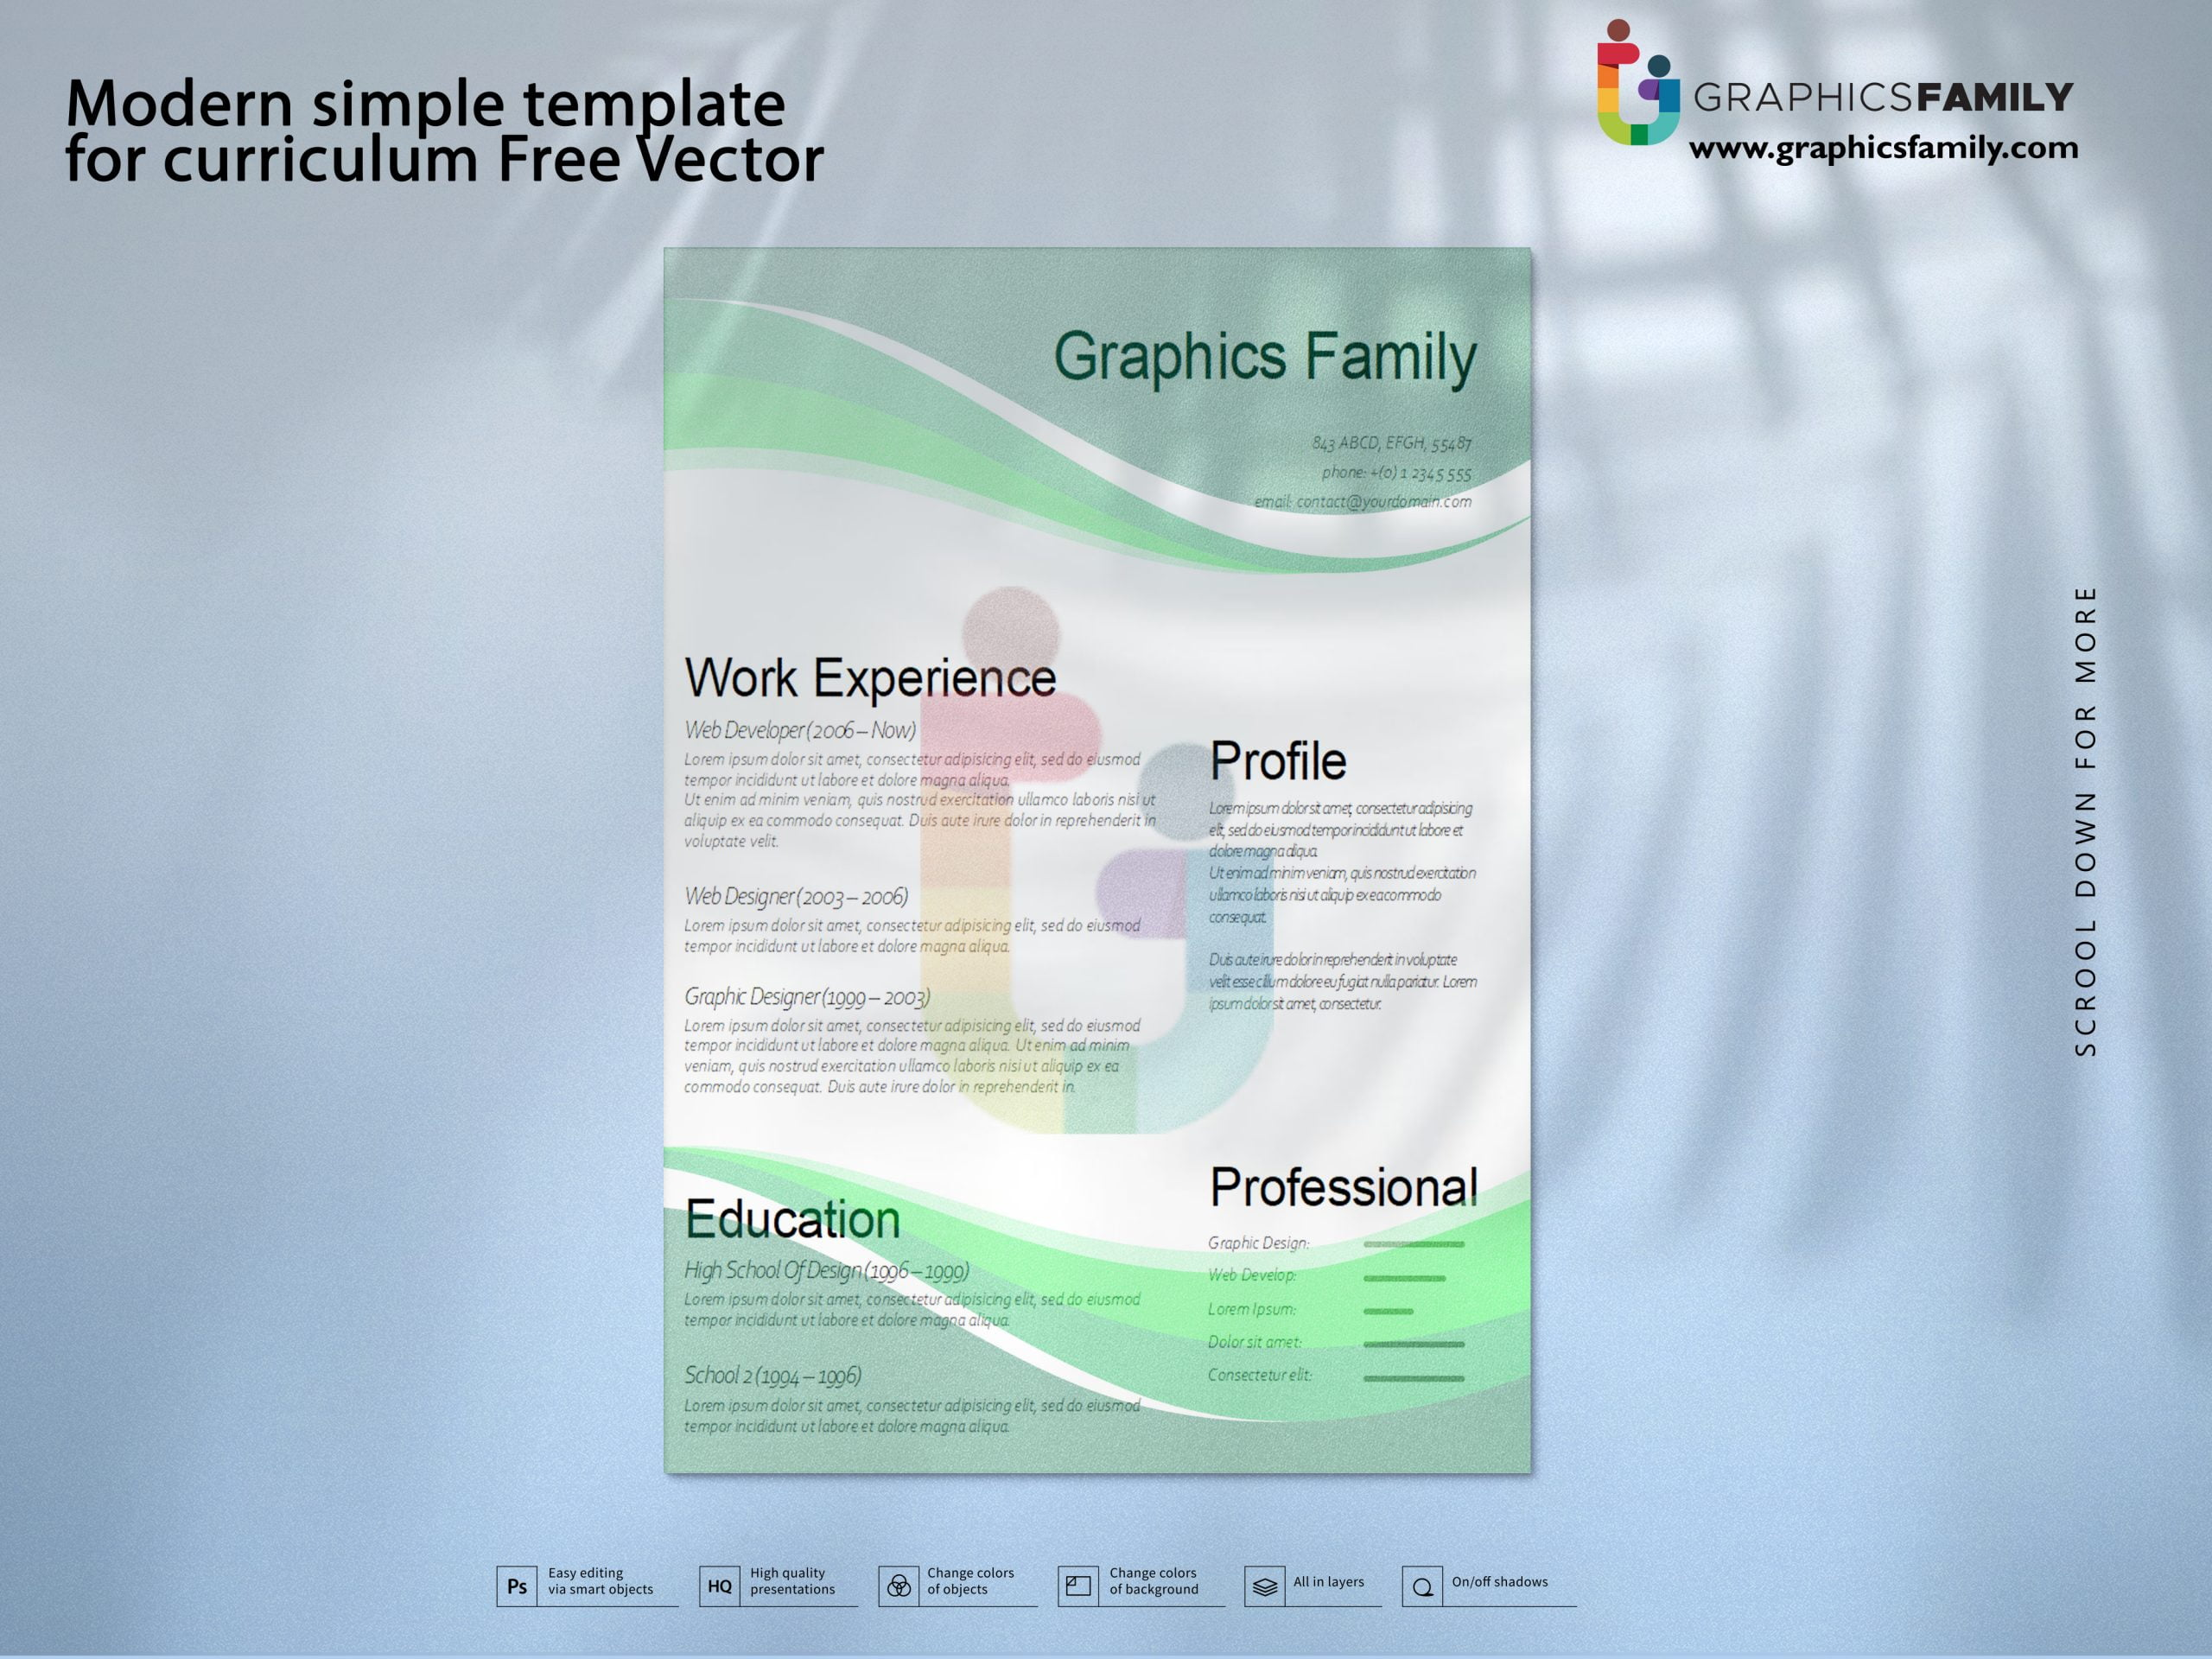 Modern simple template for curriculum Free Vector Free Download